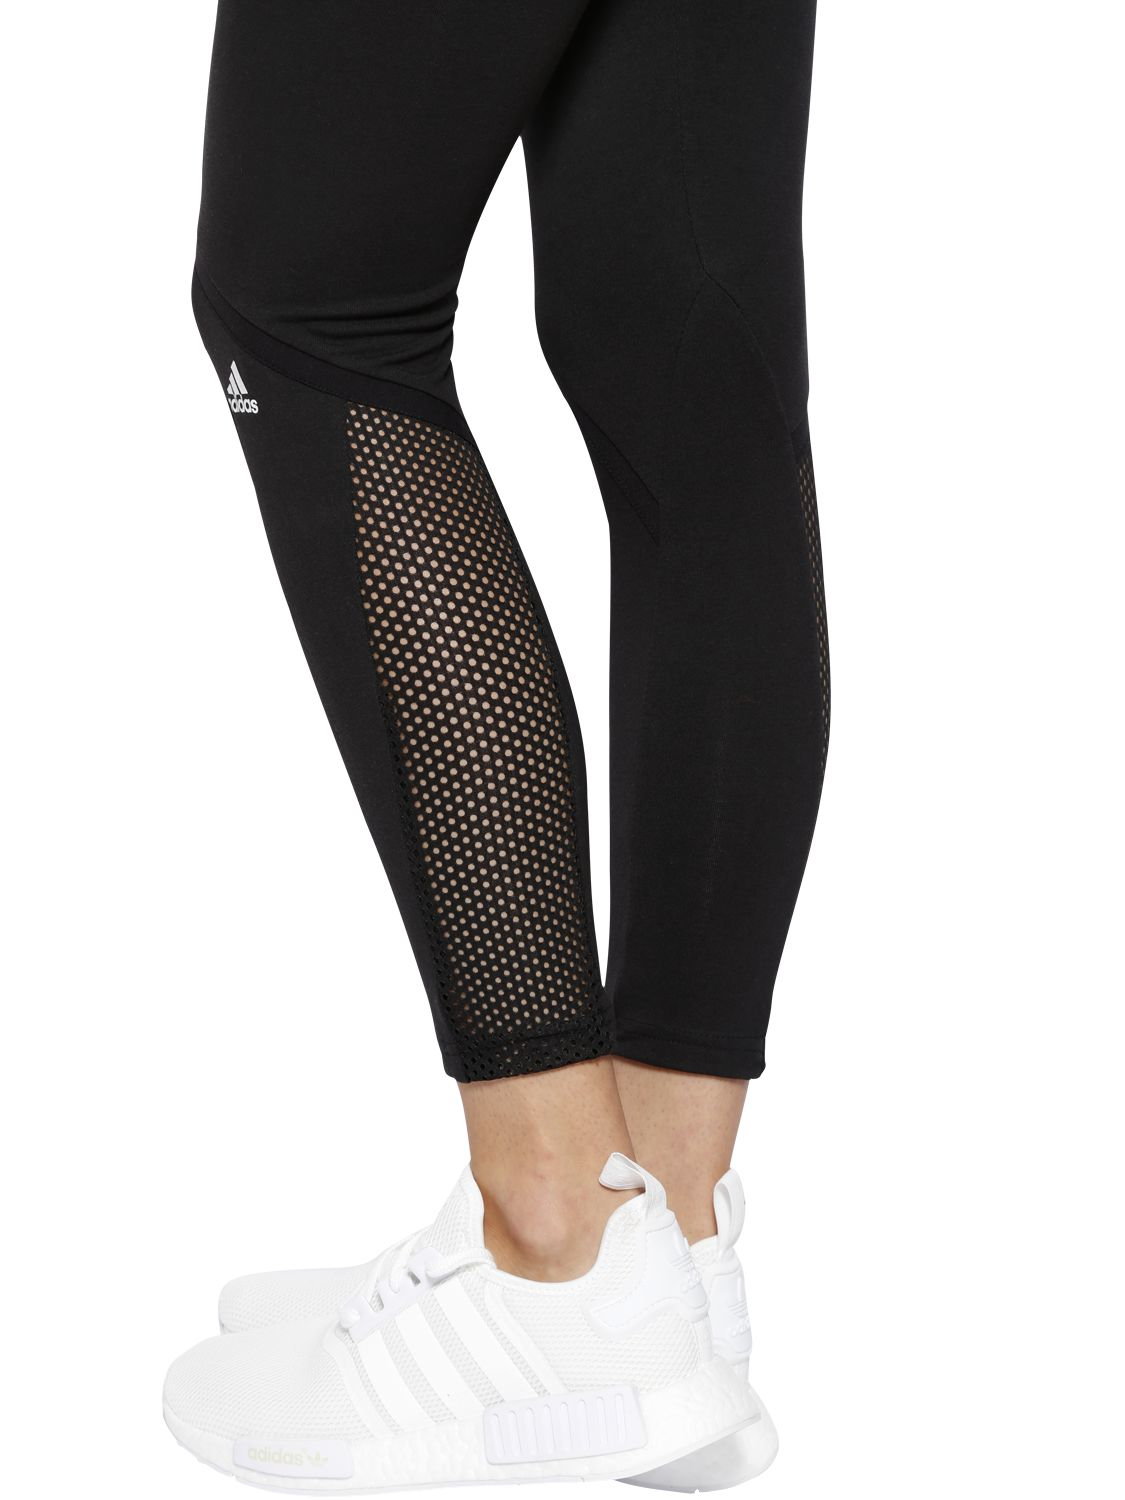 a485df9a67ac9 adidas Climalite Jersey Training Leggings in Black - Lyst